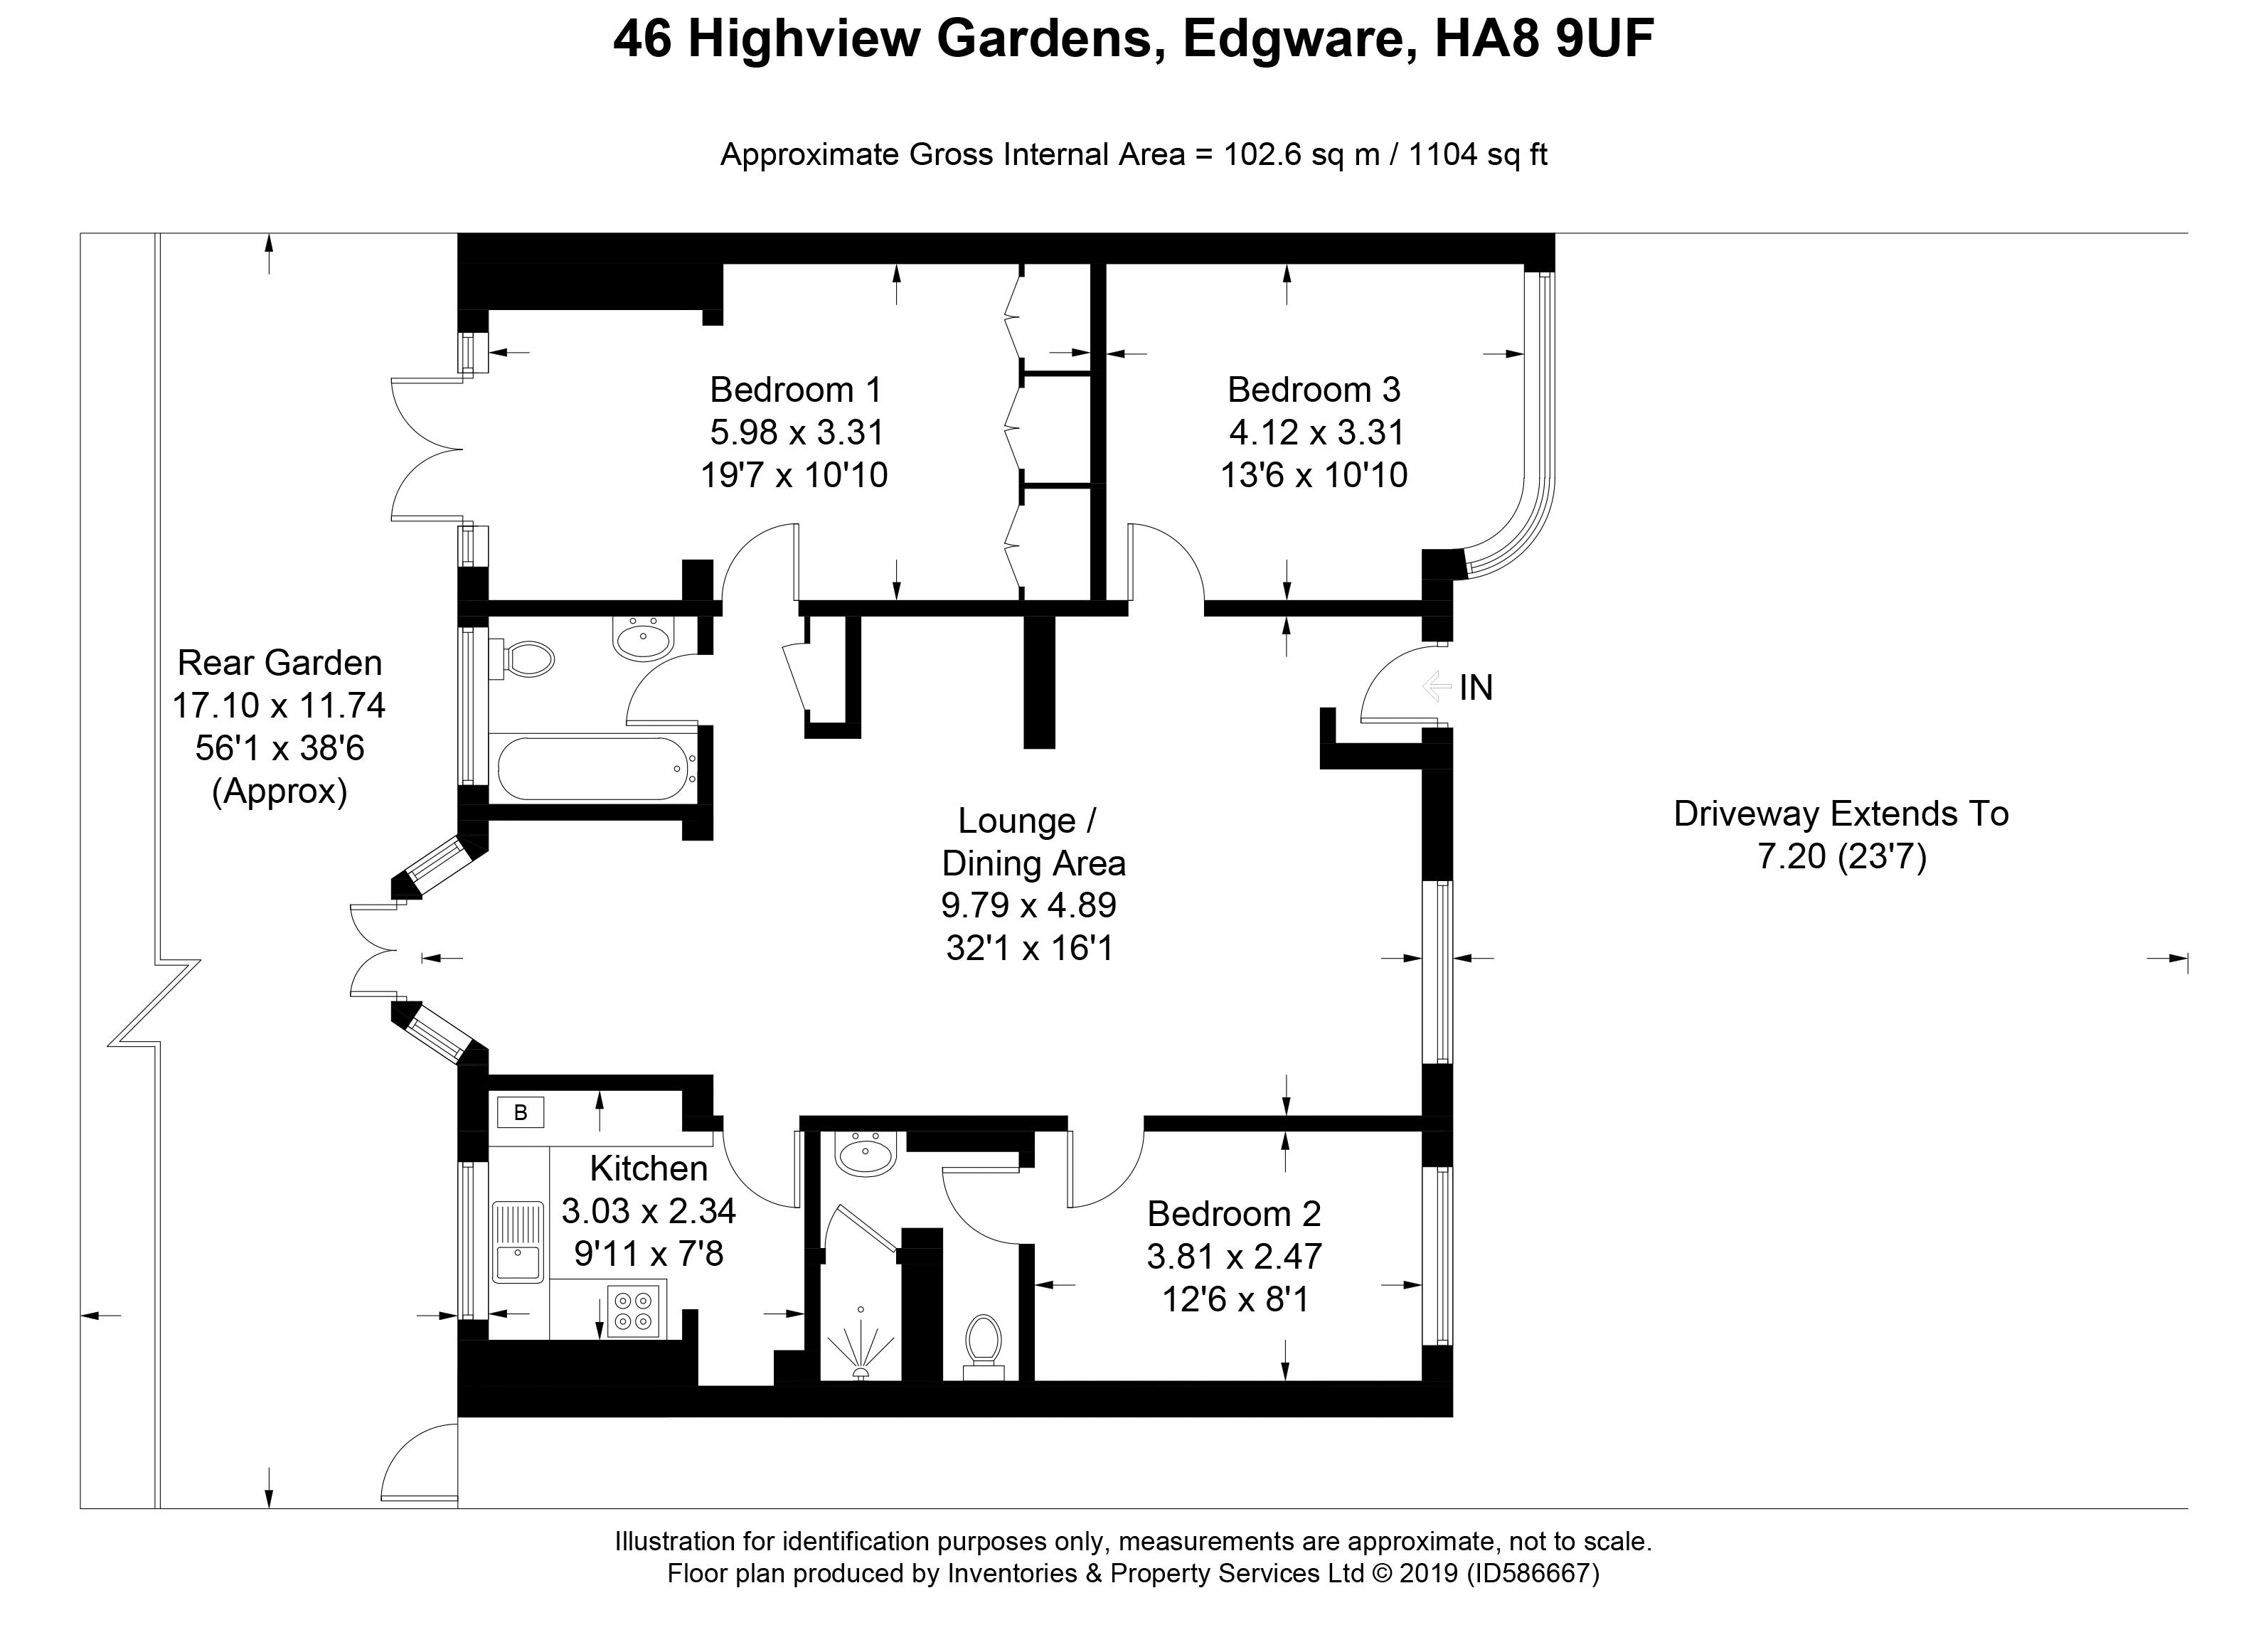 Highview Gardens